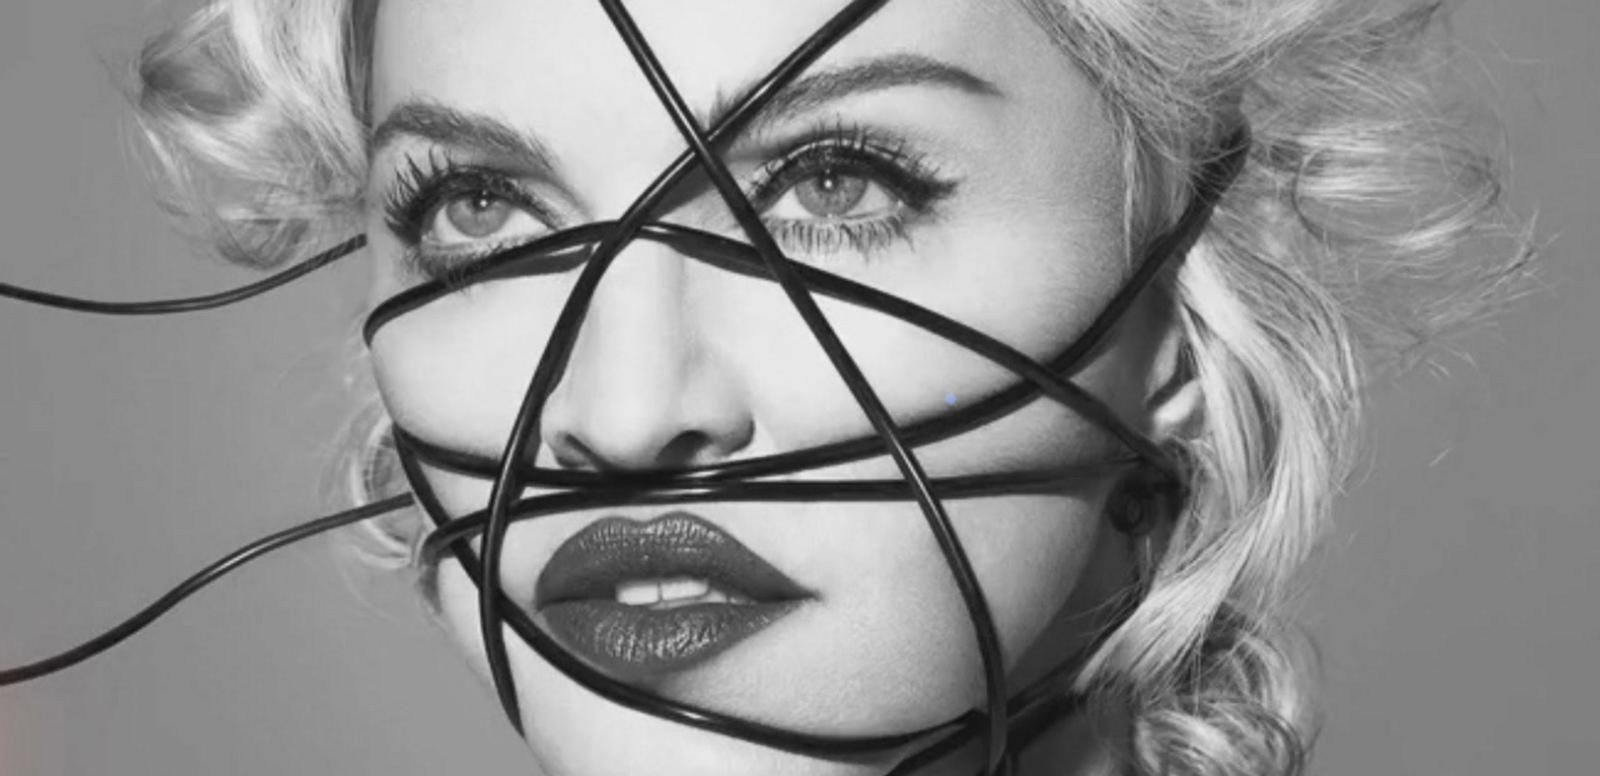 VIDEO: Madonna Goes on Social Media Tirade Over Newly Leaked Songs